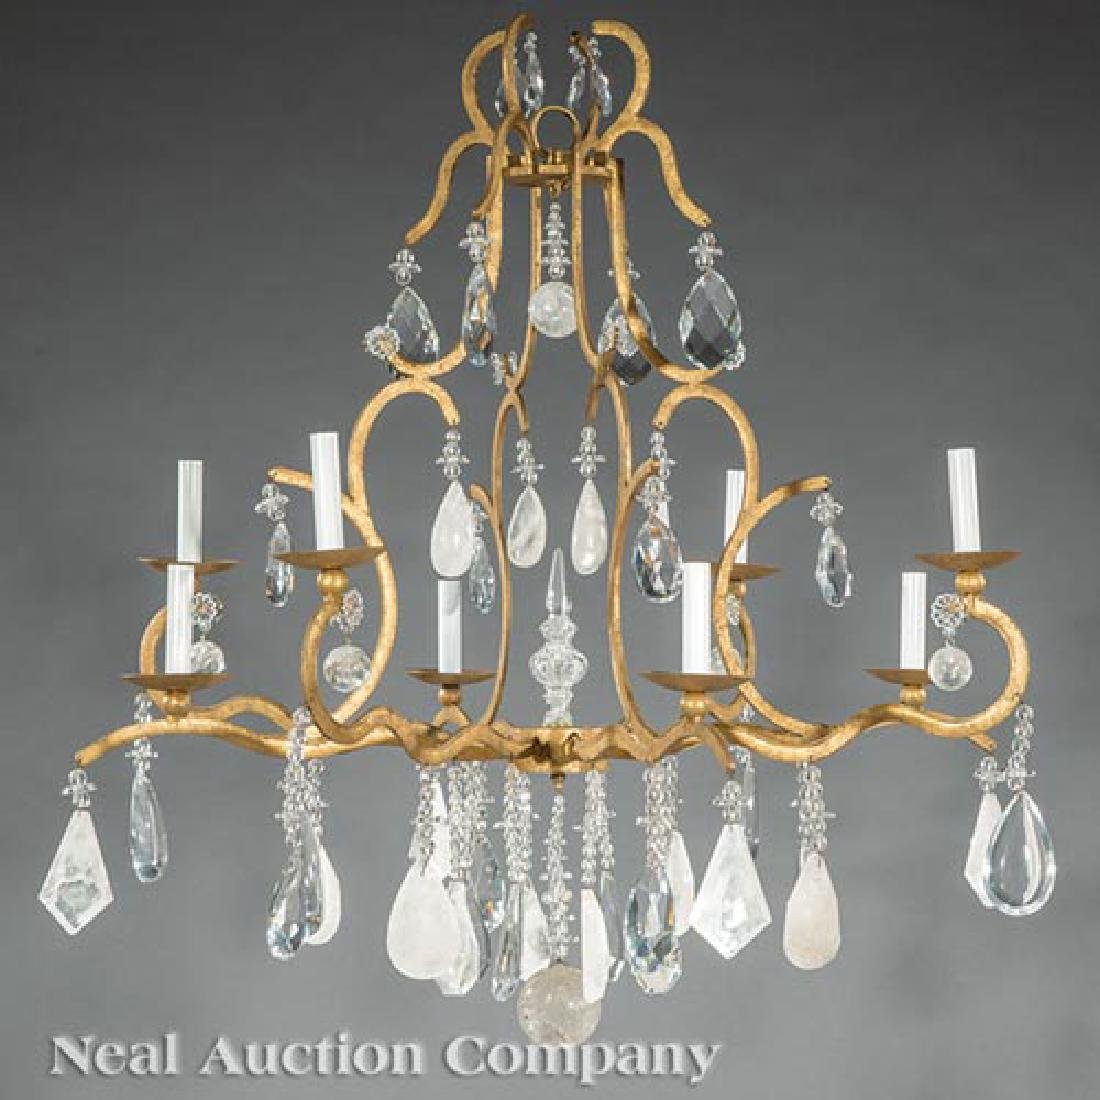 Gilt Metal, Rock Crystal, Cut Crystal Chandelier